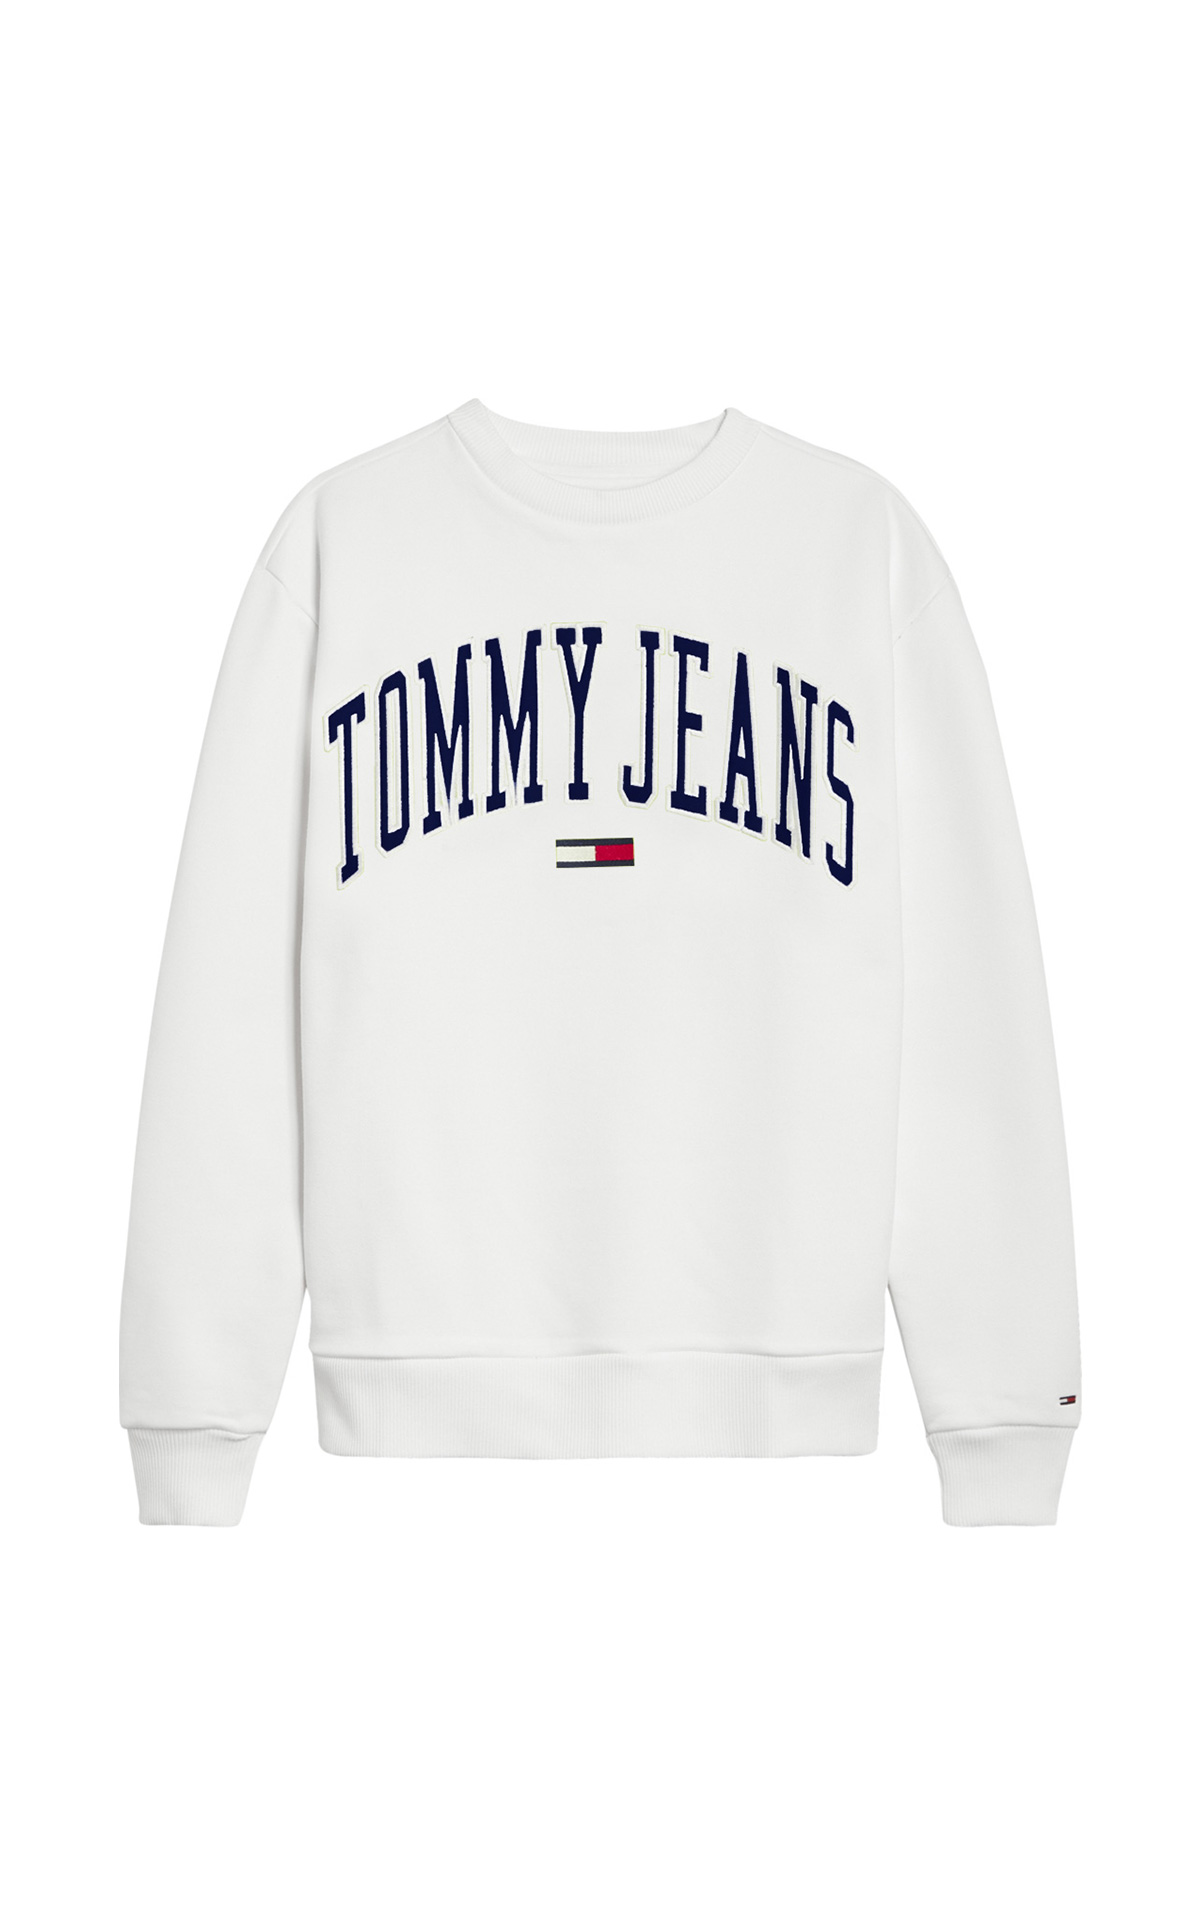 Tommy Hilfiger heavyweight knits at The Bicester Village Shopping Collection